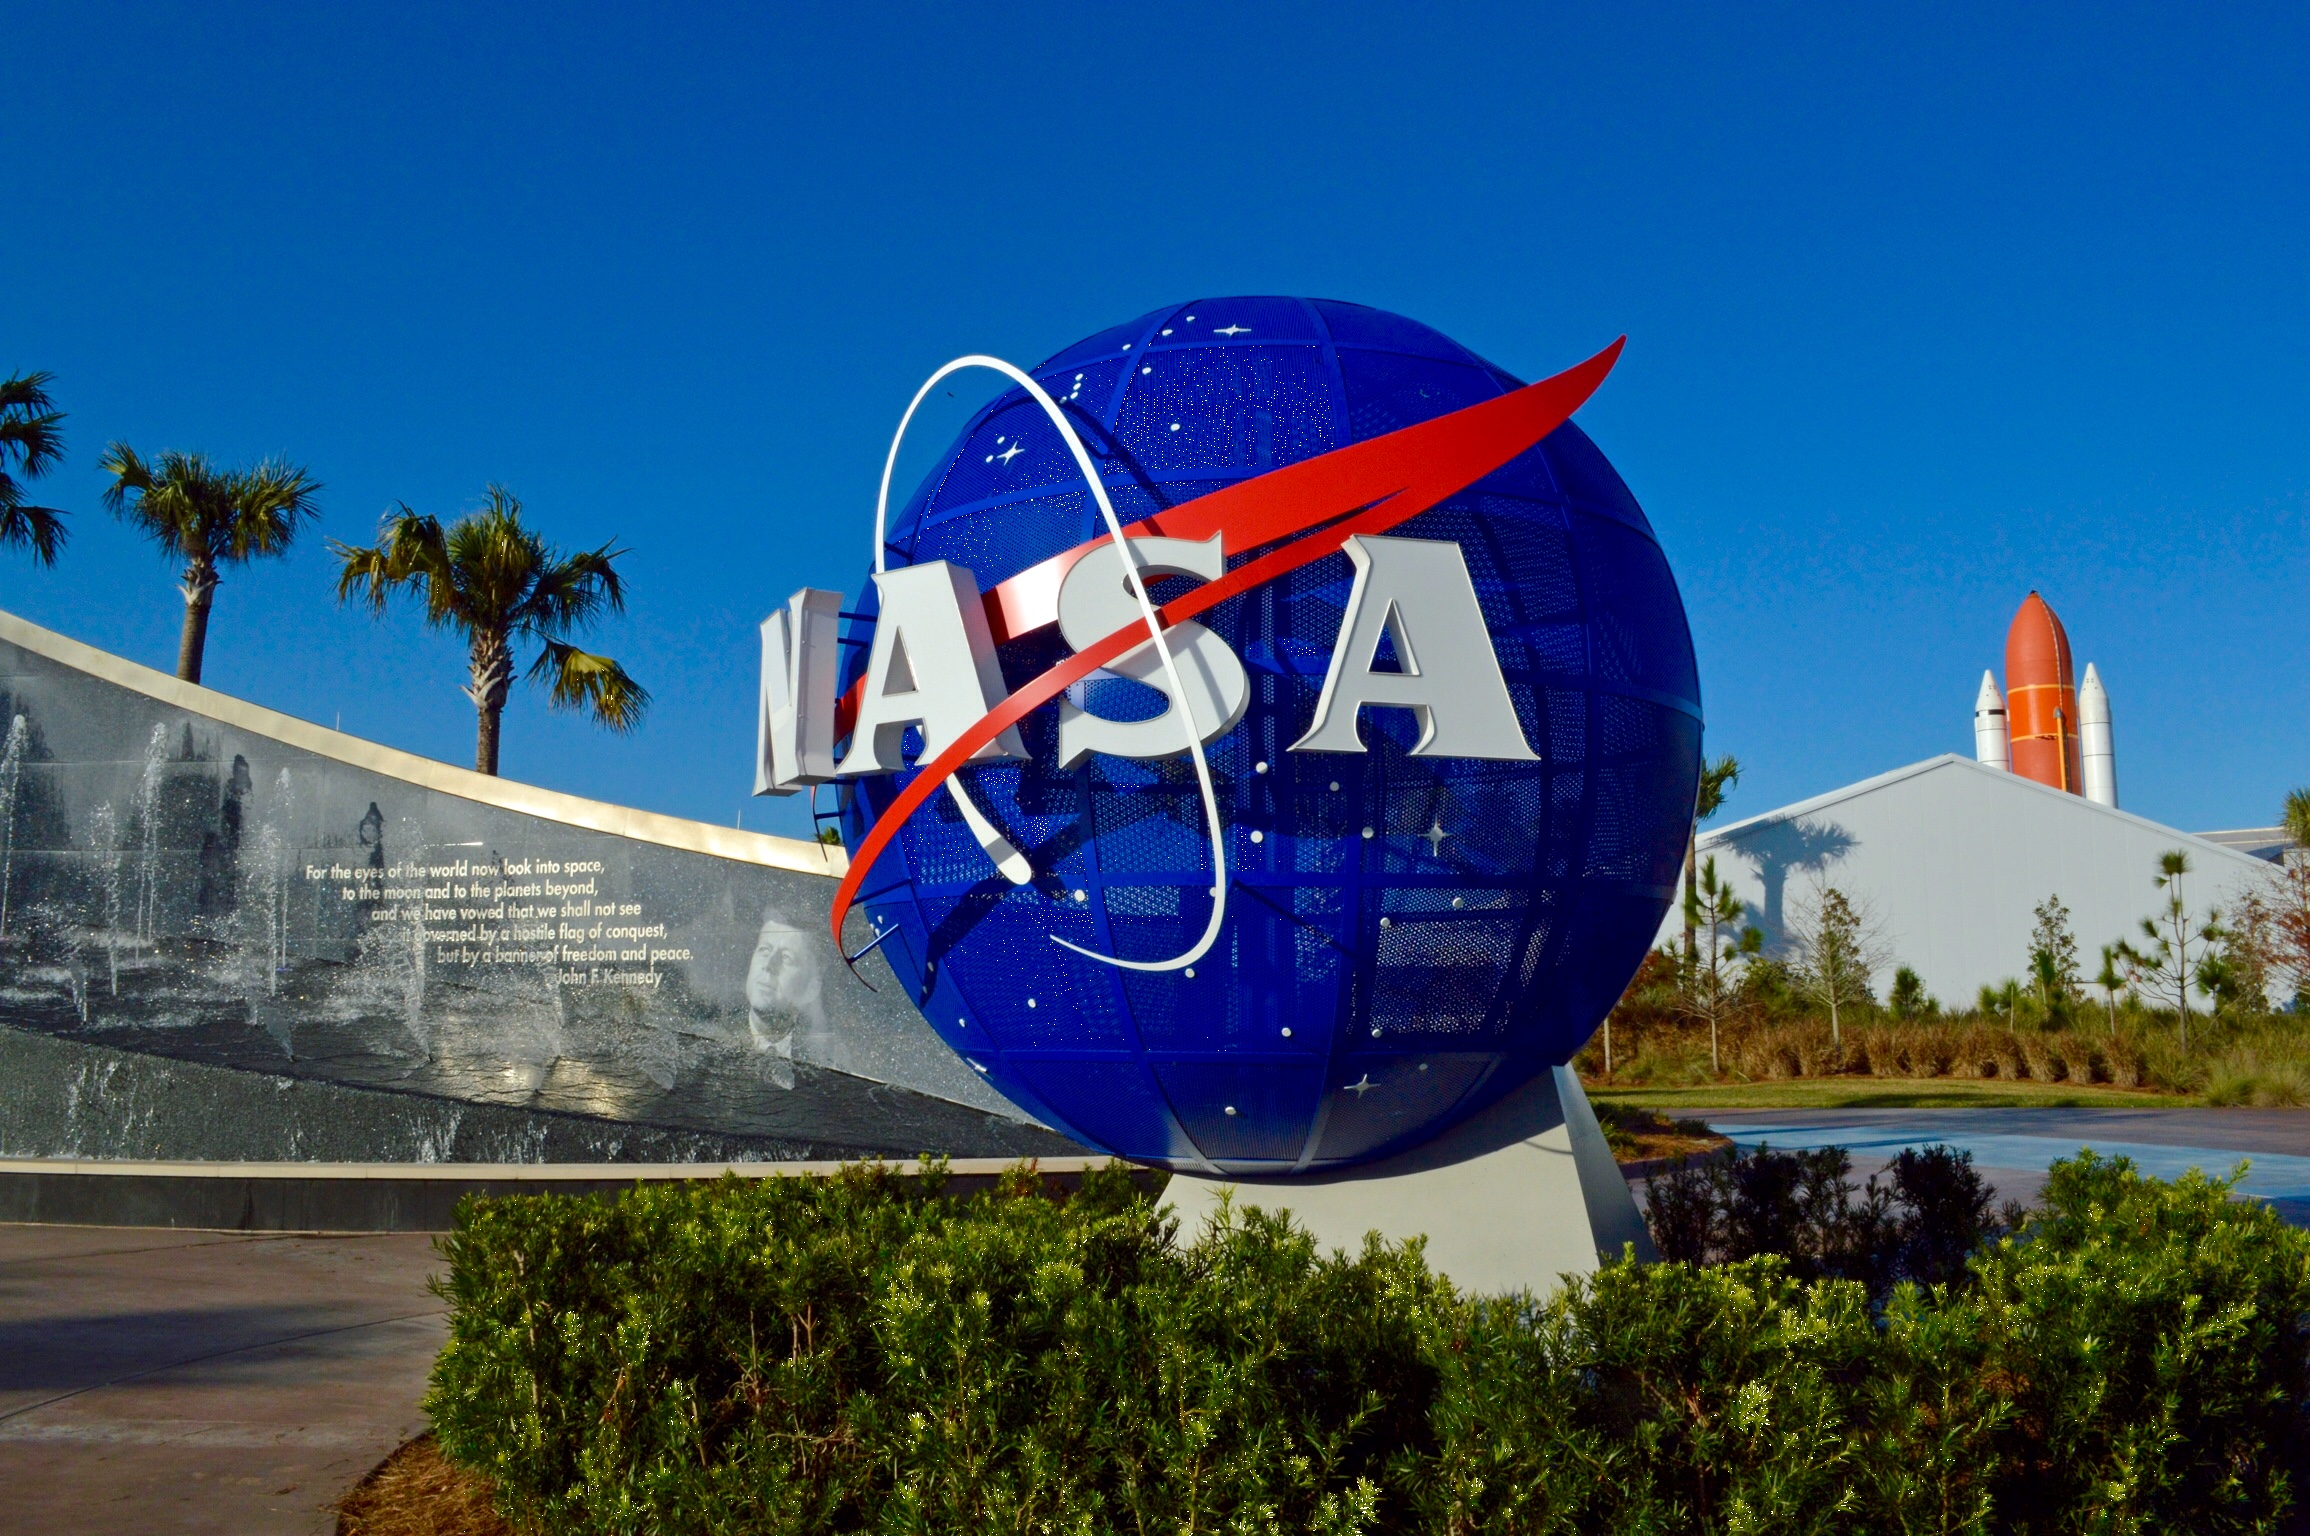 You Can Now Apply For a 6-Figure NASA Job Defending Earth From Alien Contamination